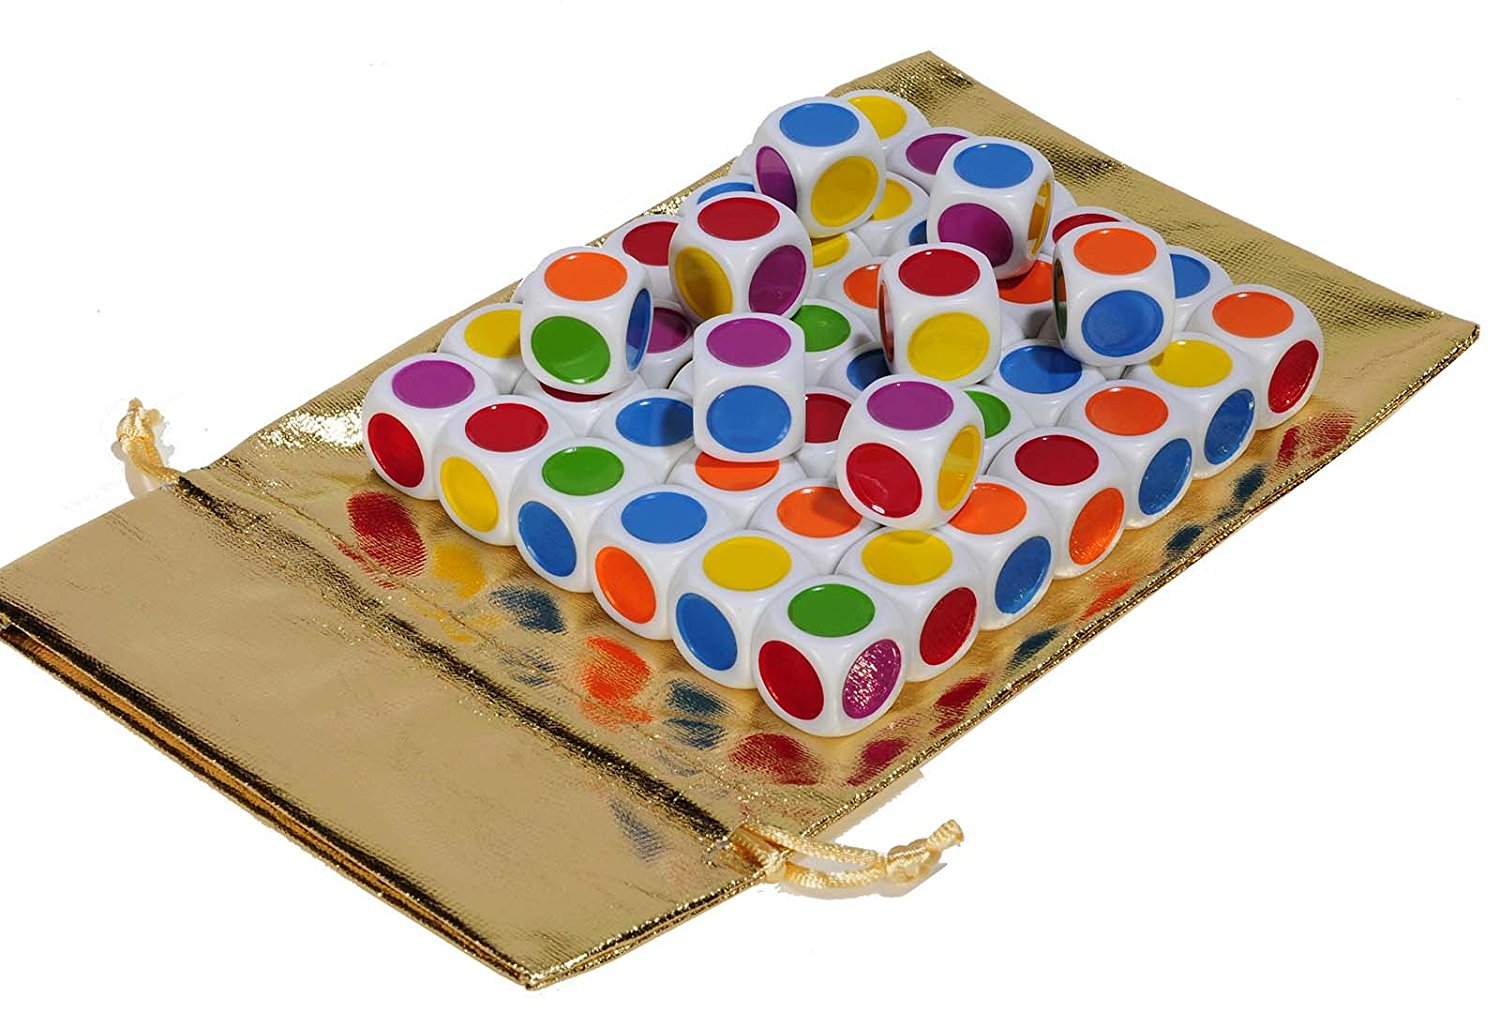 """Color Dot Dice, D6, 3/4"""" or 20mm, with Six Colors _ Bundle of 50 Identical Dice _ Bonus Gold Metallic Cloth Drawstring Storage Pouch _ Bundled Items"""